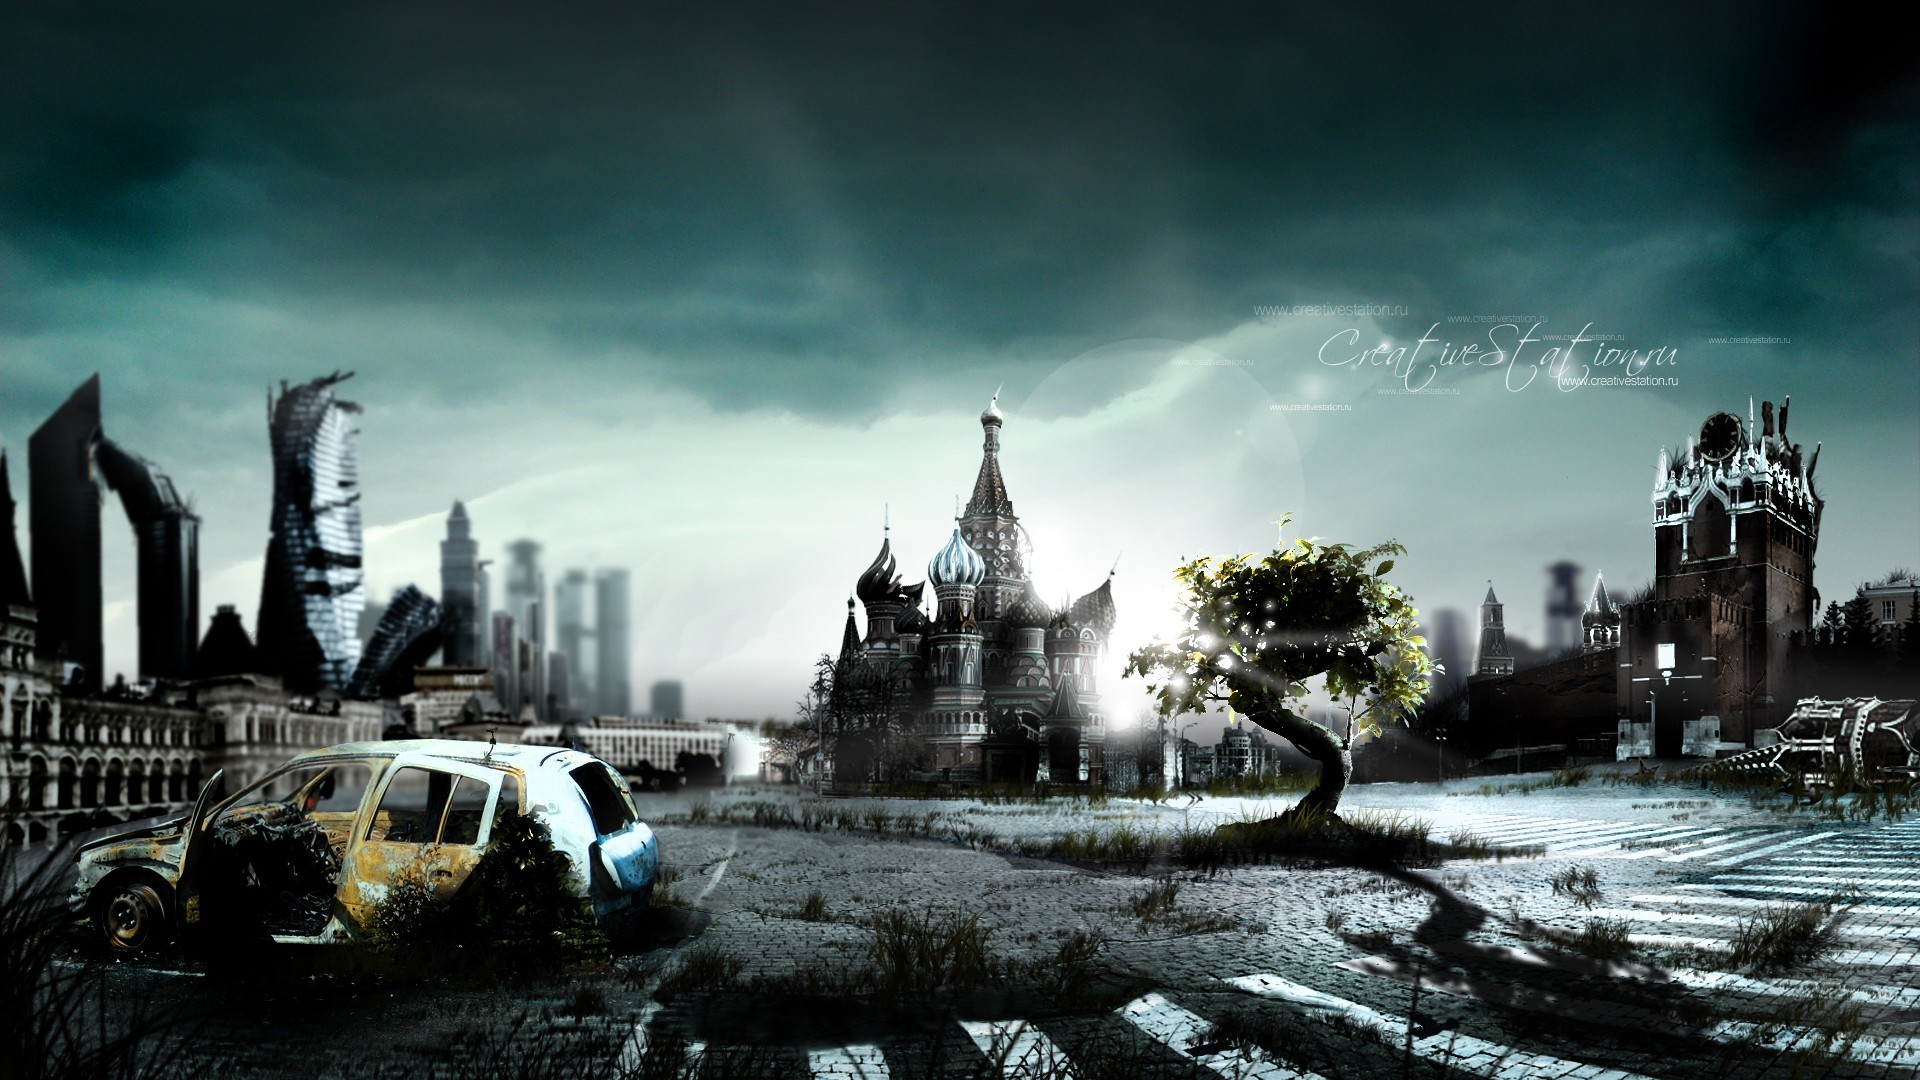 moscow-legend-photo-manipulation-2801440-1920x1080.jpg